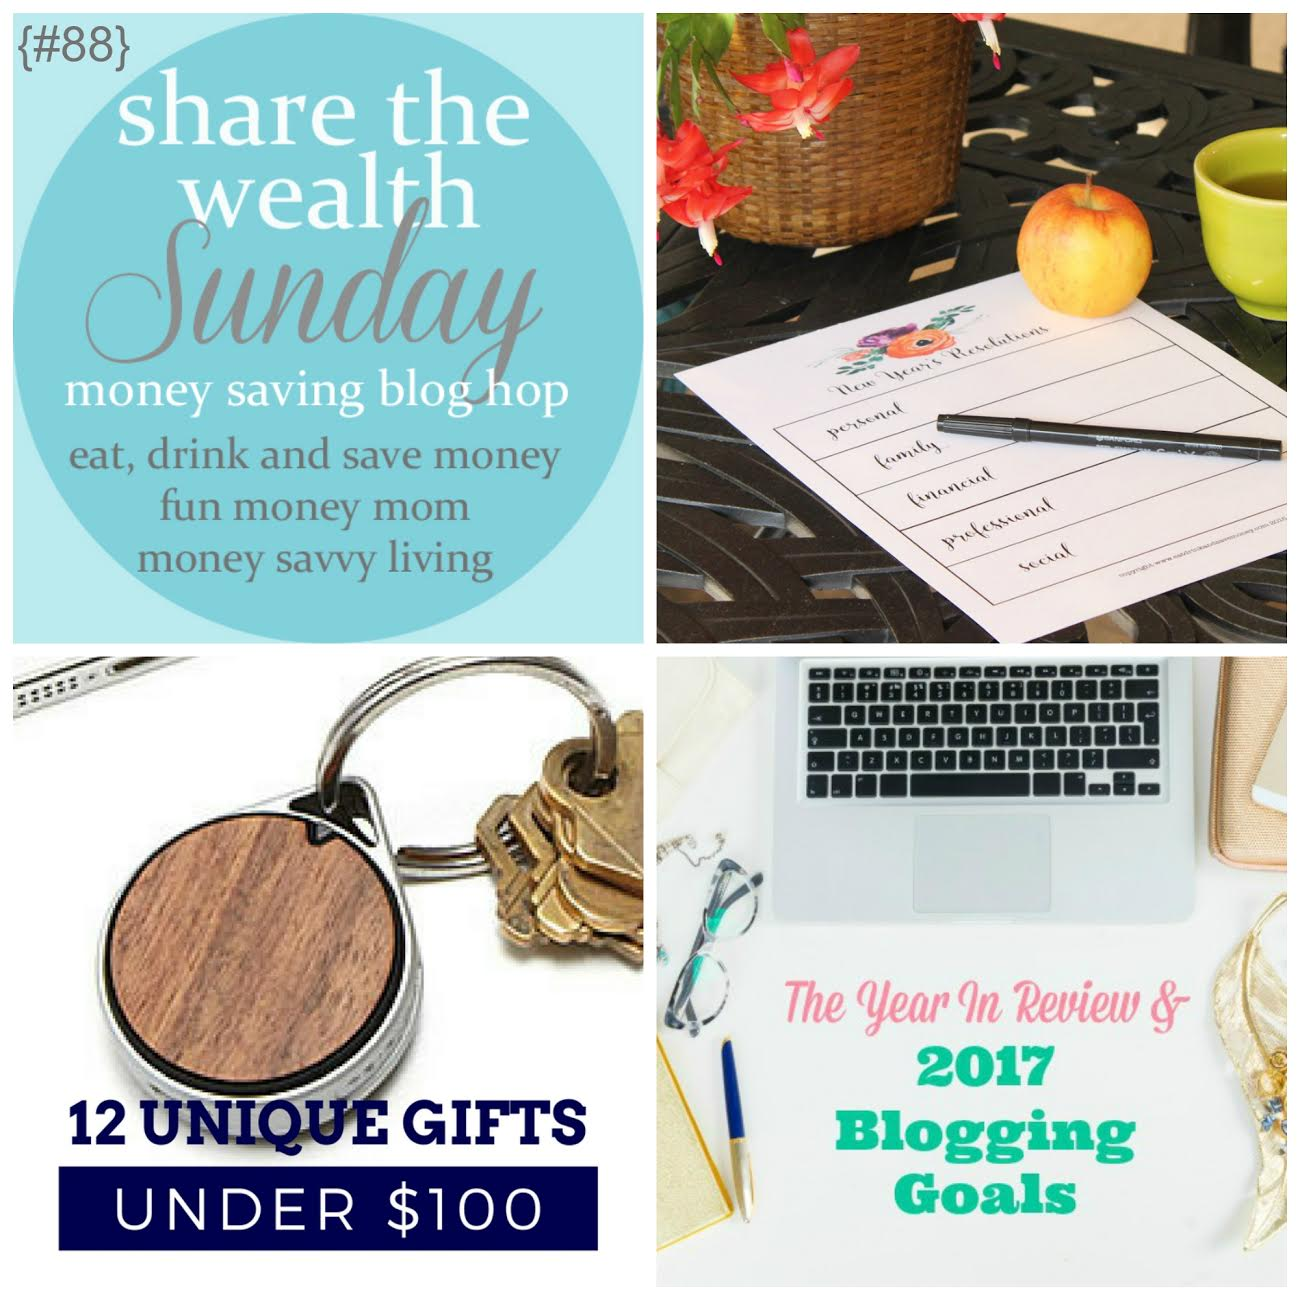 Share the Wealth Sunday hosts 88